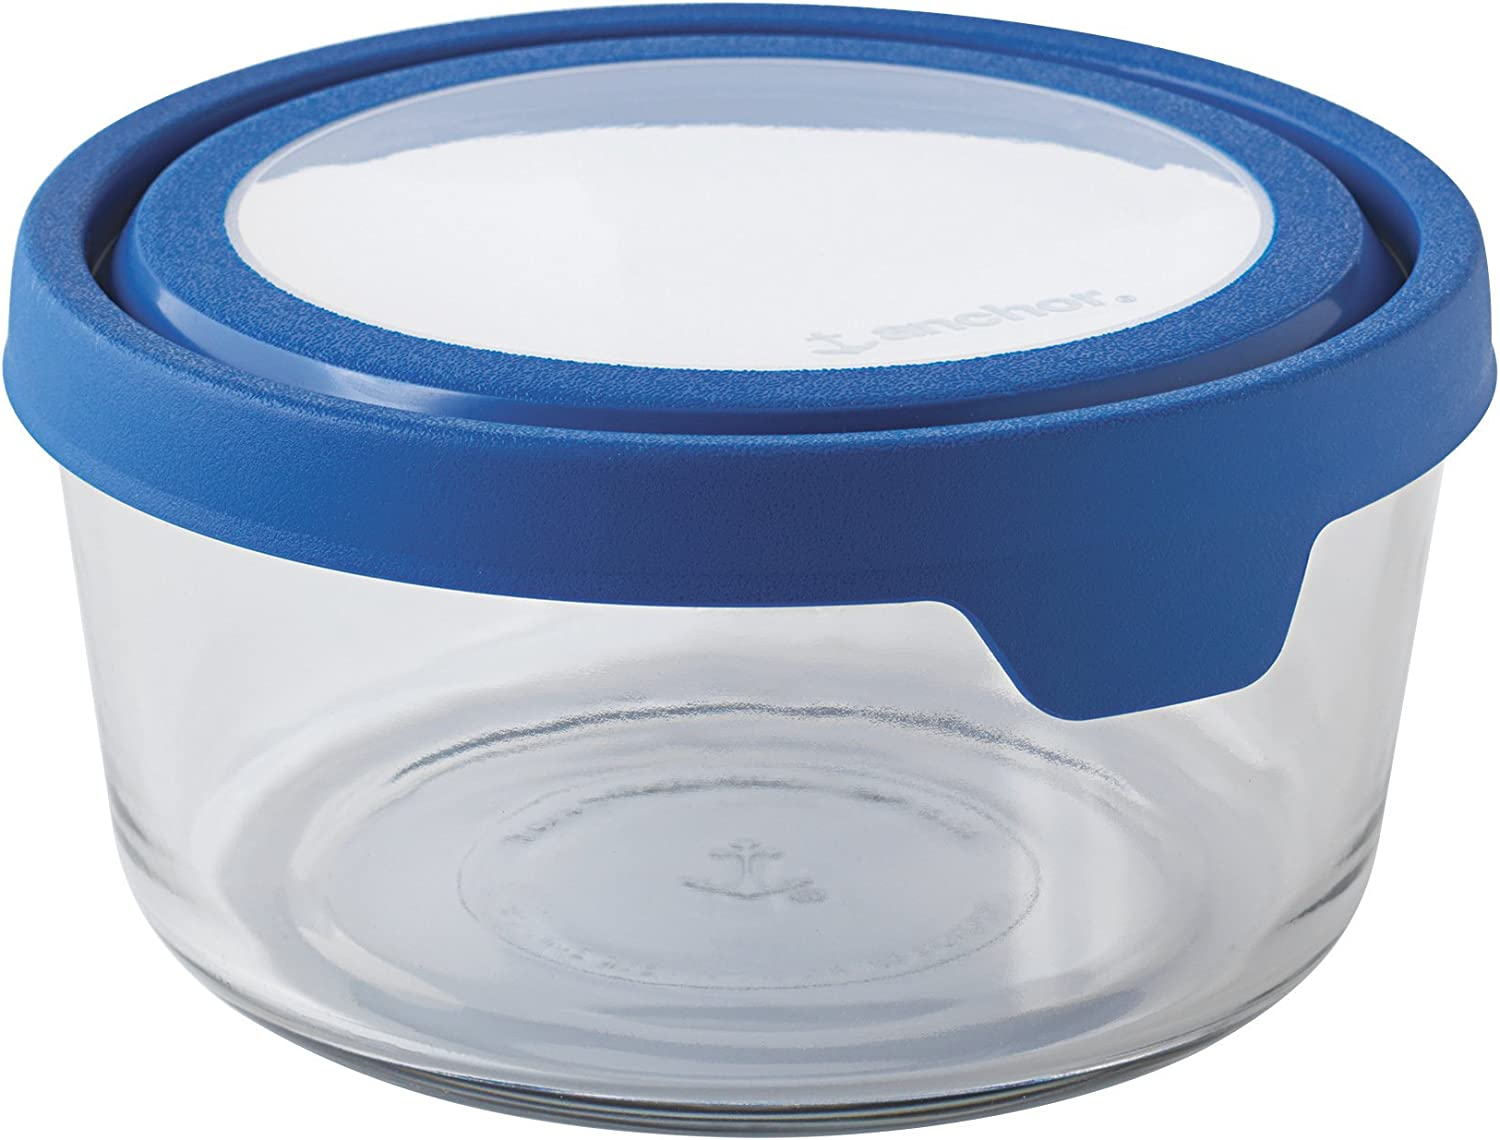 Anchor Hocking TrueSeal Glass Food Storage Container with Airtight Lid, Blueberry, 7 Cup